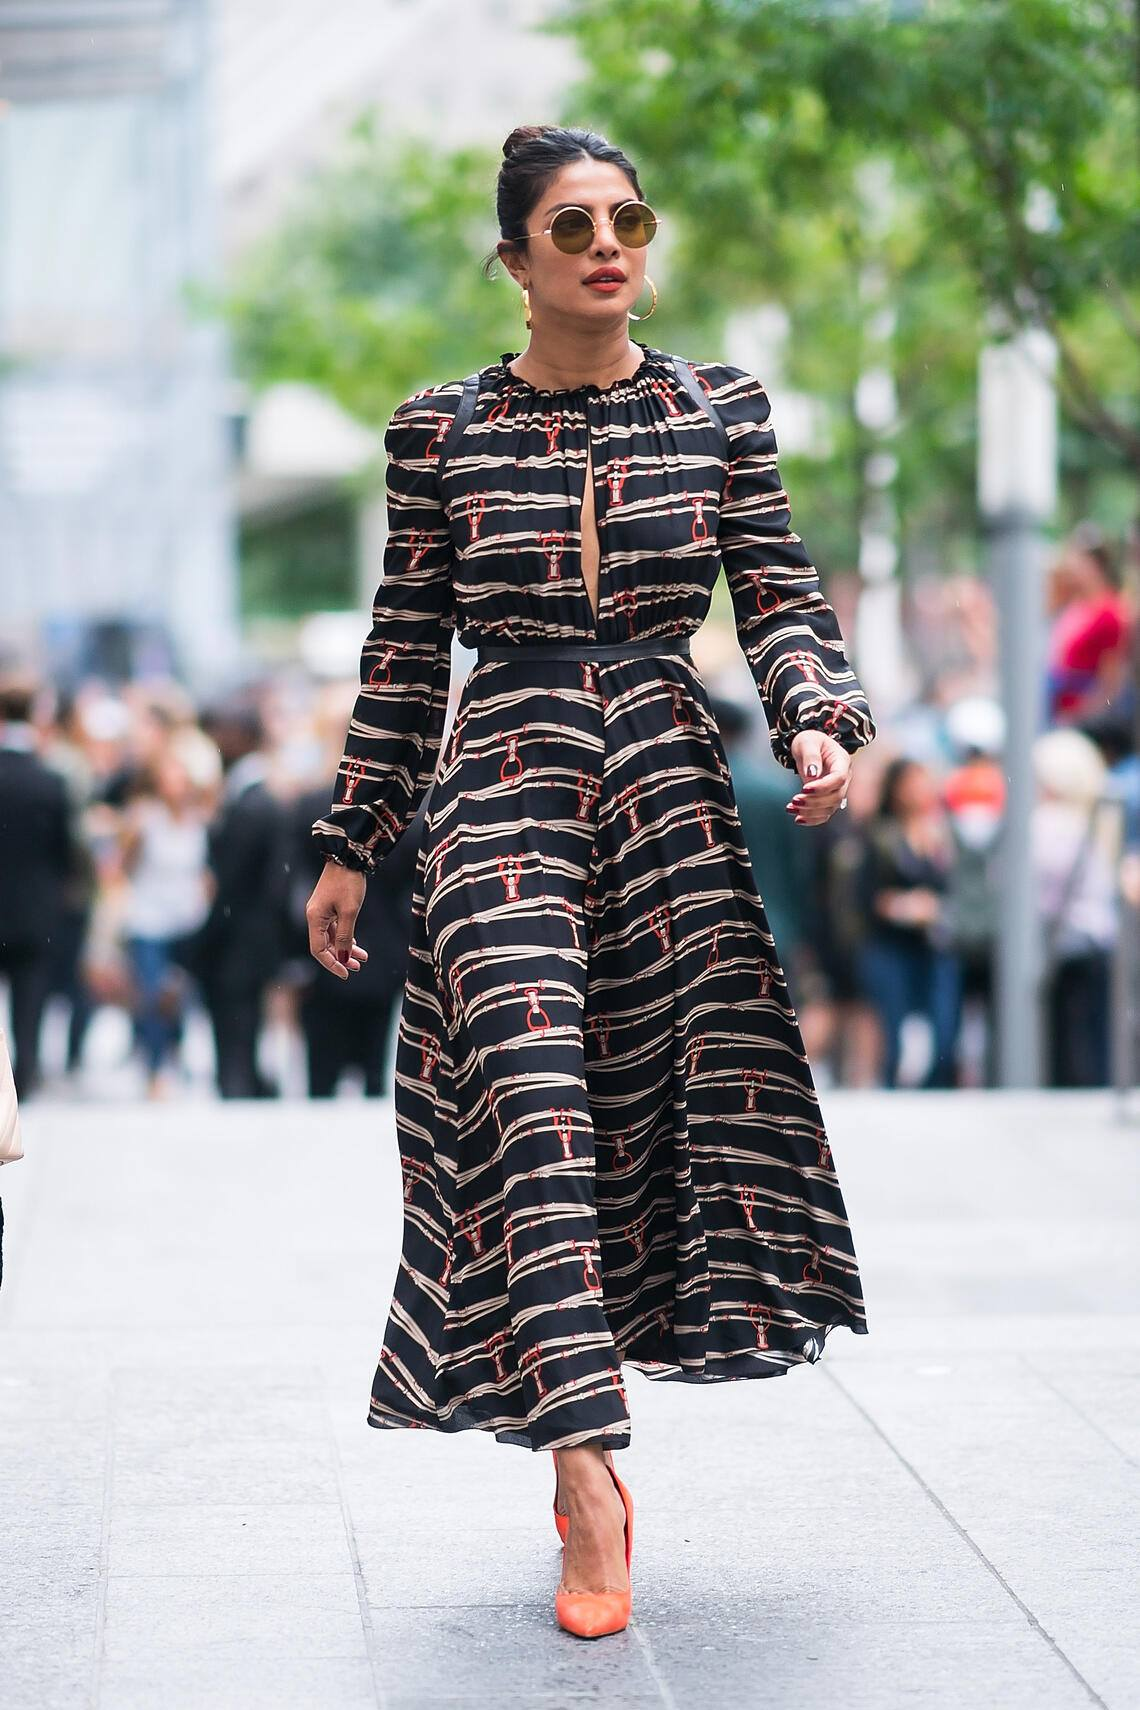 NEW YORK, NY - SEPTEMBER 08:  Priyanka Chopra is seen departing  the Longchamp fashion show during New York Fashion Week in the Financial District on September 8, 2018 in New York City.  (Photo by Gotham/GC Images)